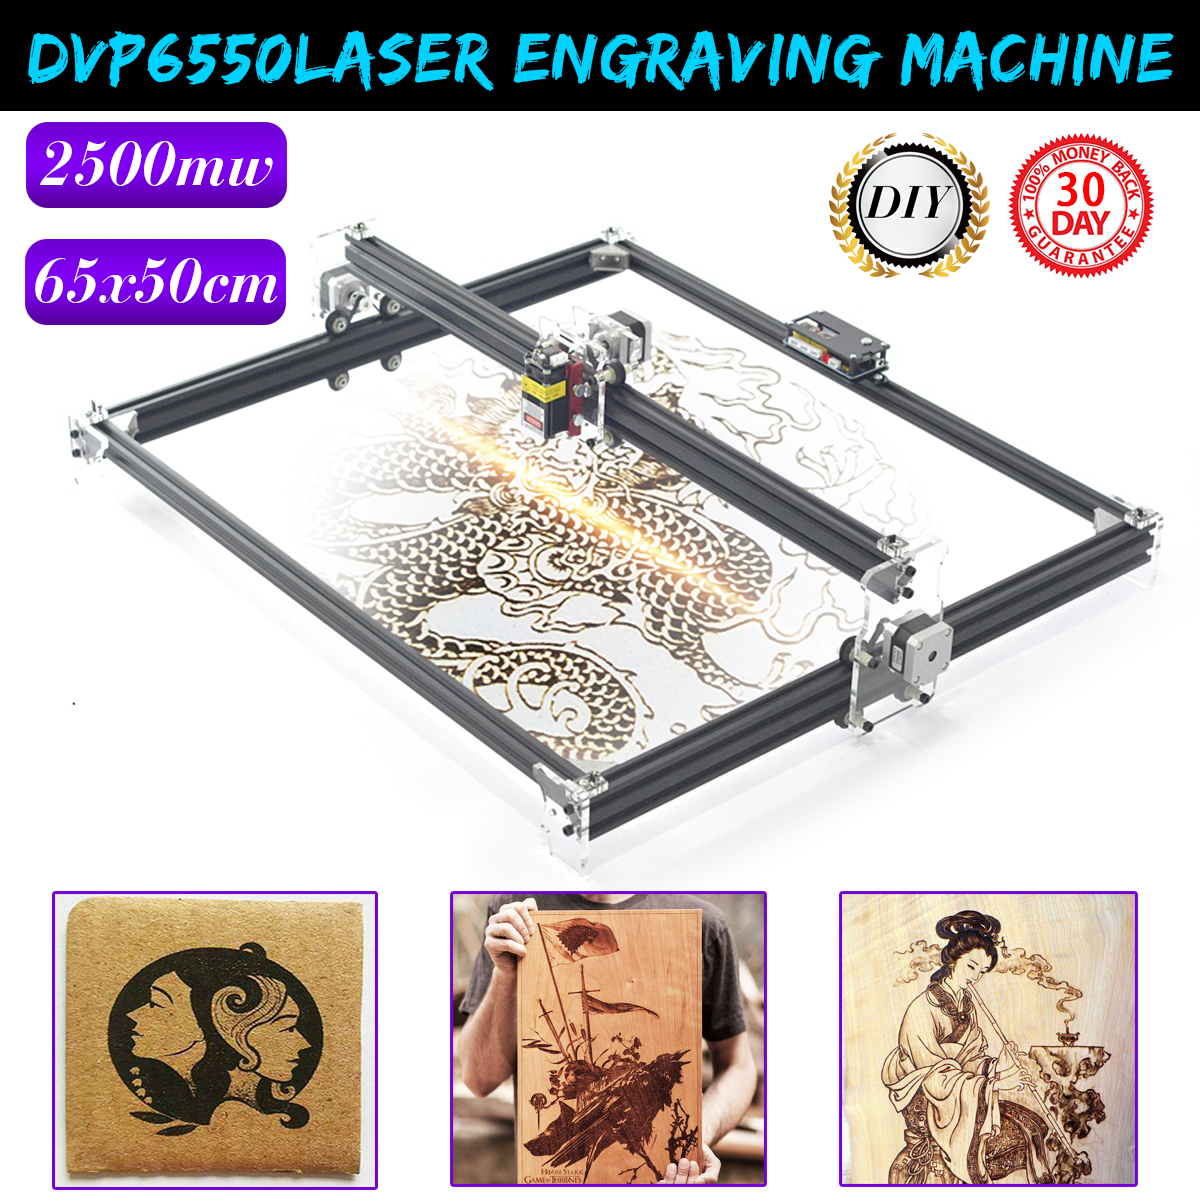 2500MW 65x50cm Laser Engraving Machine Cutting Printer CNC Control LOGO Router CNC Router Best Advanced toys2500MW 65x50cm Laser Engraving Machine Cutting Printer CNC Control LOGO Router CNC Router Best Advanced toys